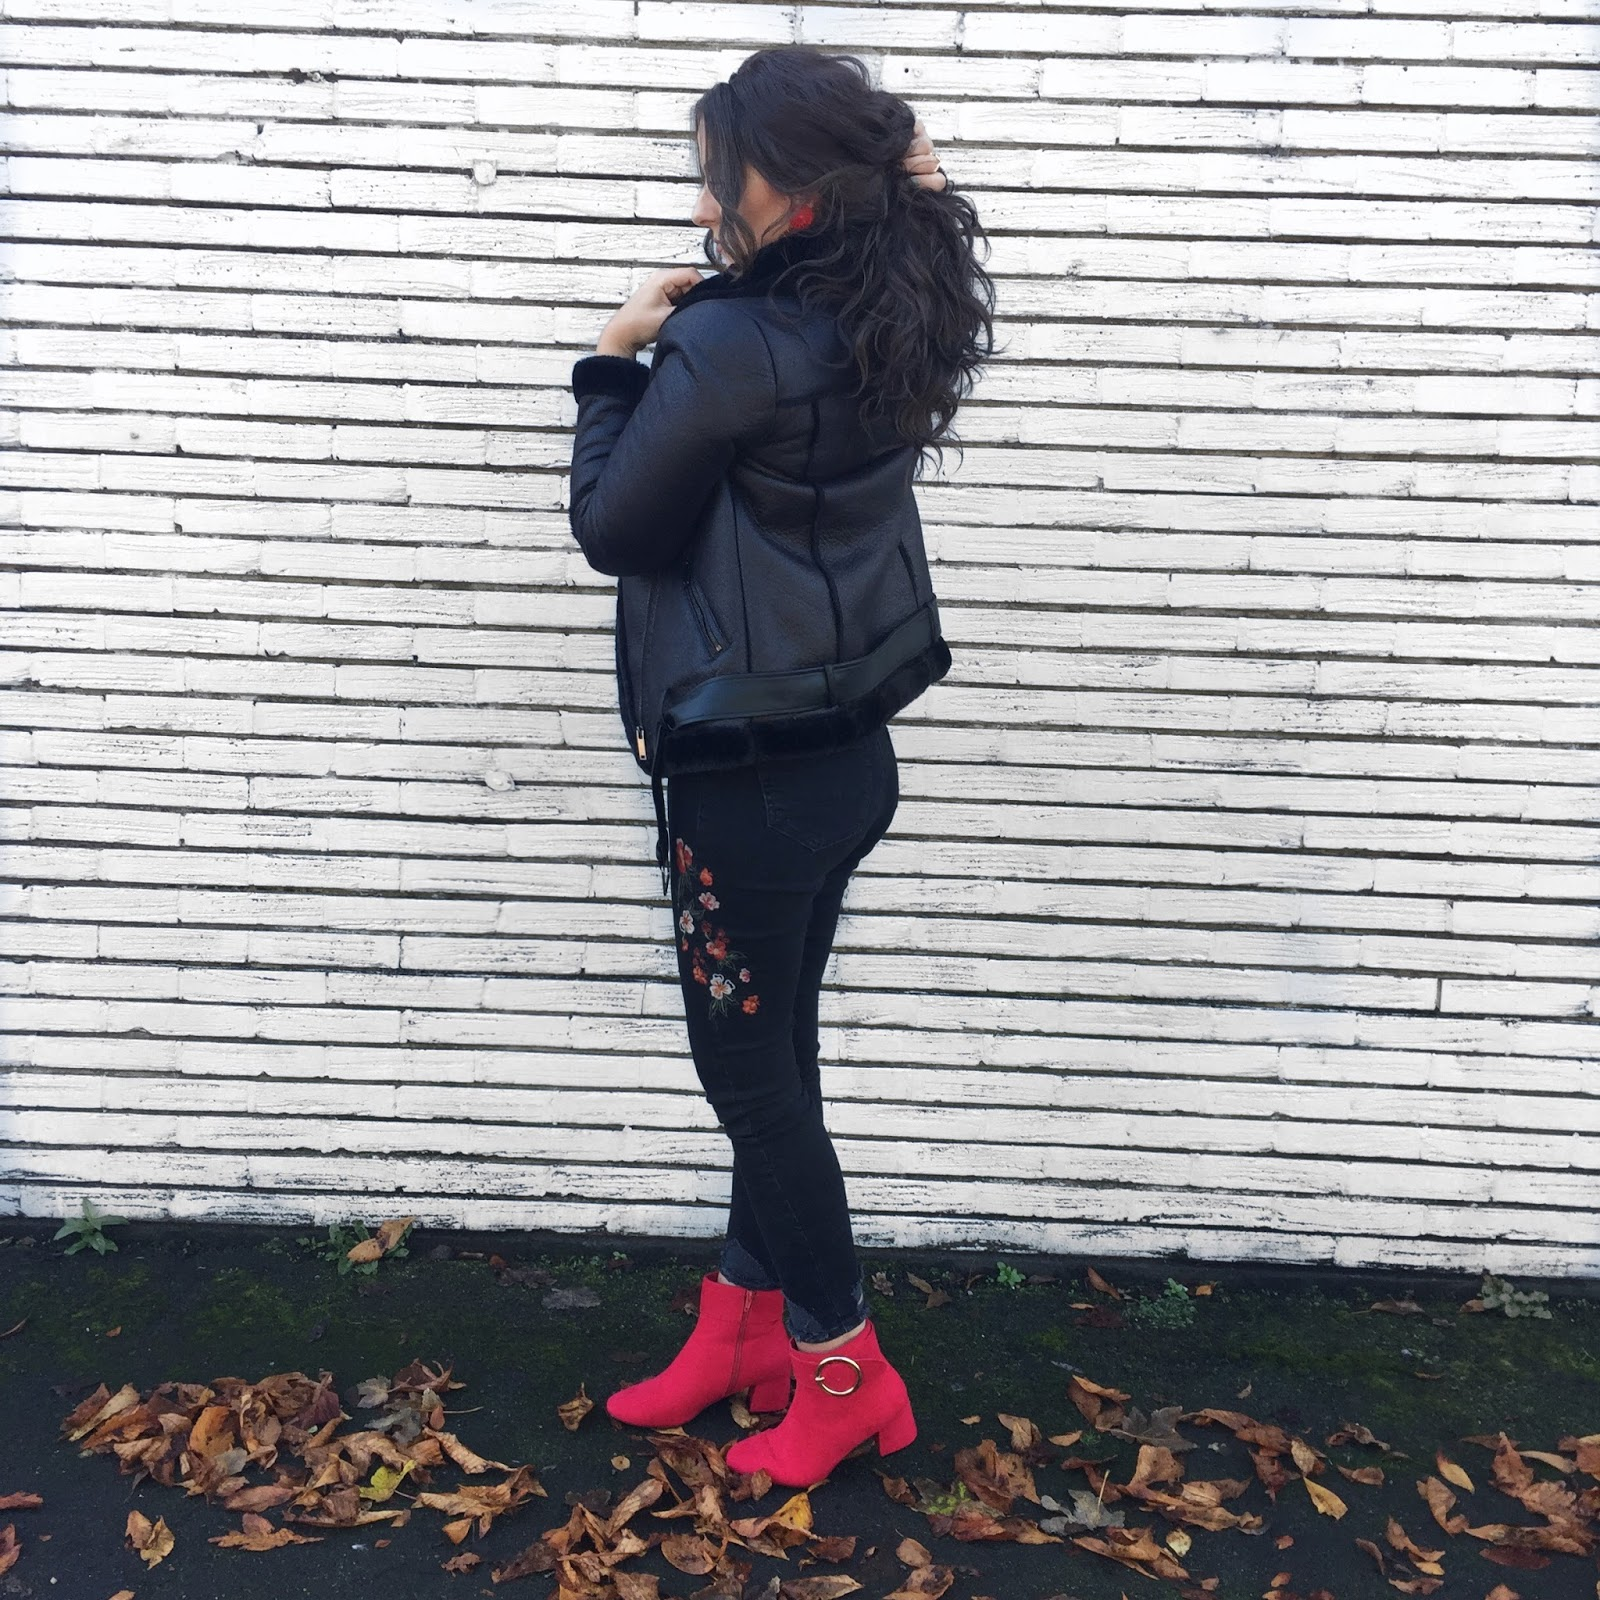 FASHION || The Aviator Jacket Takes Off featuring Primark highstreet aviator jacket and red boots.